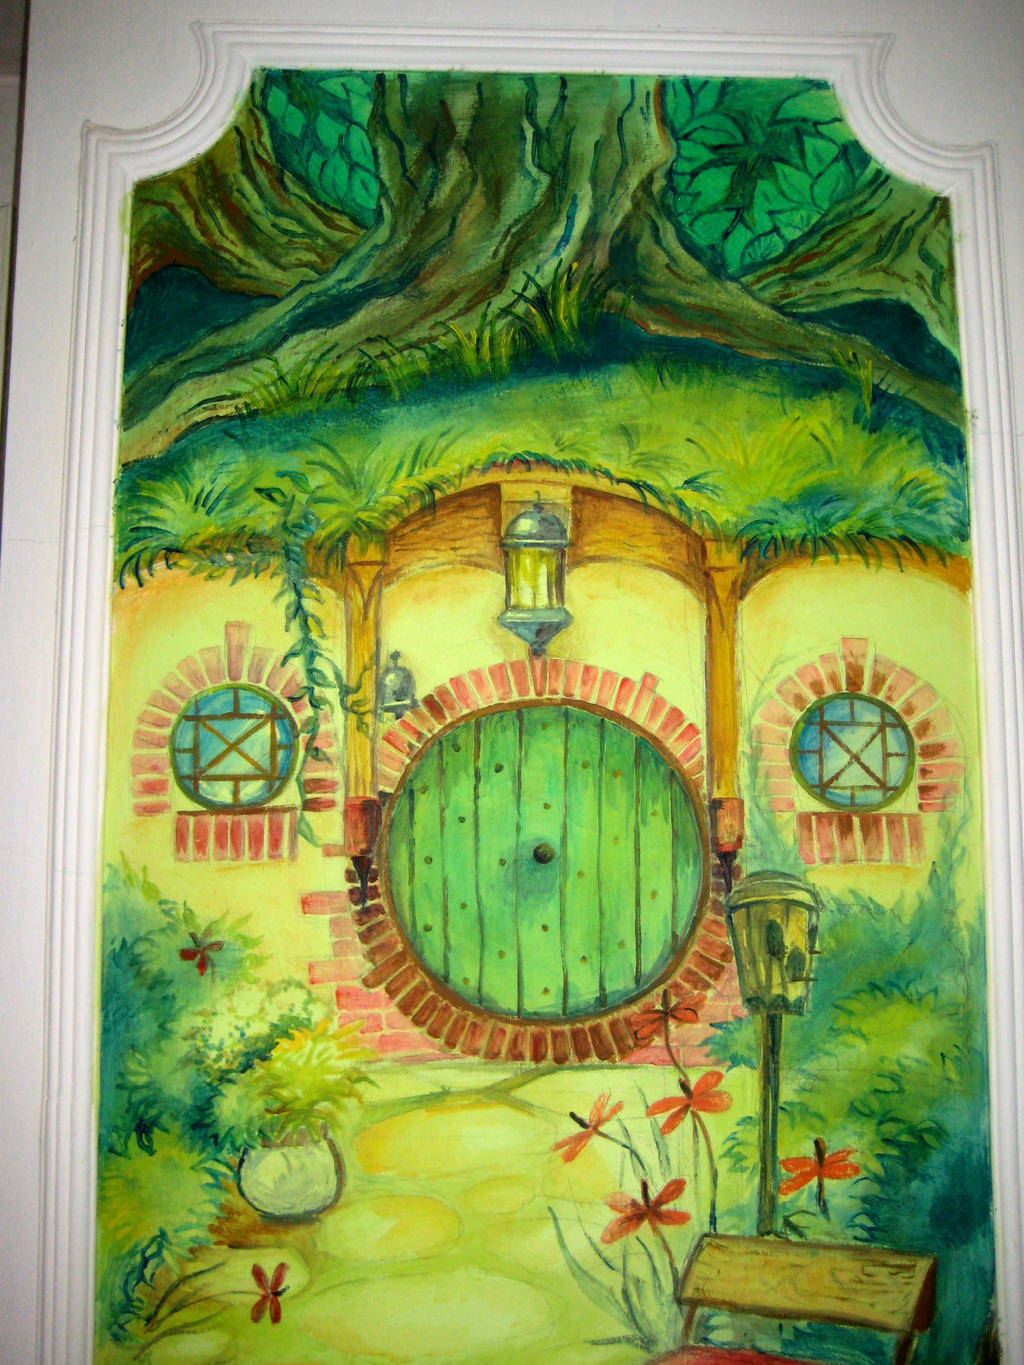 ... The Hobbit - wall painting green door by Miletysant & The Hobbit - wall painting green door by Miletysant on DeviantArt